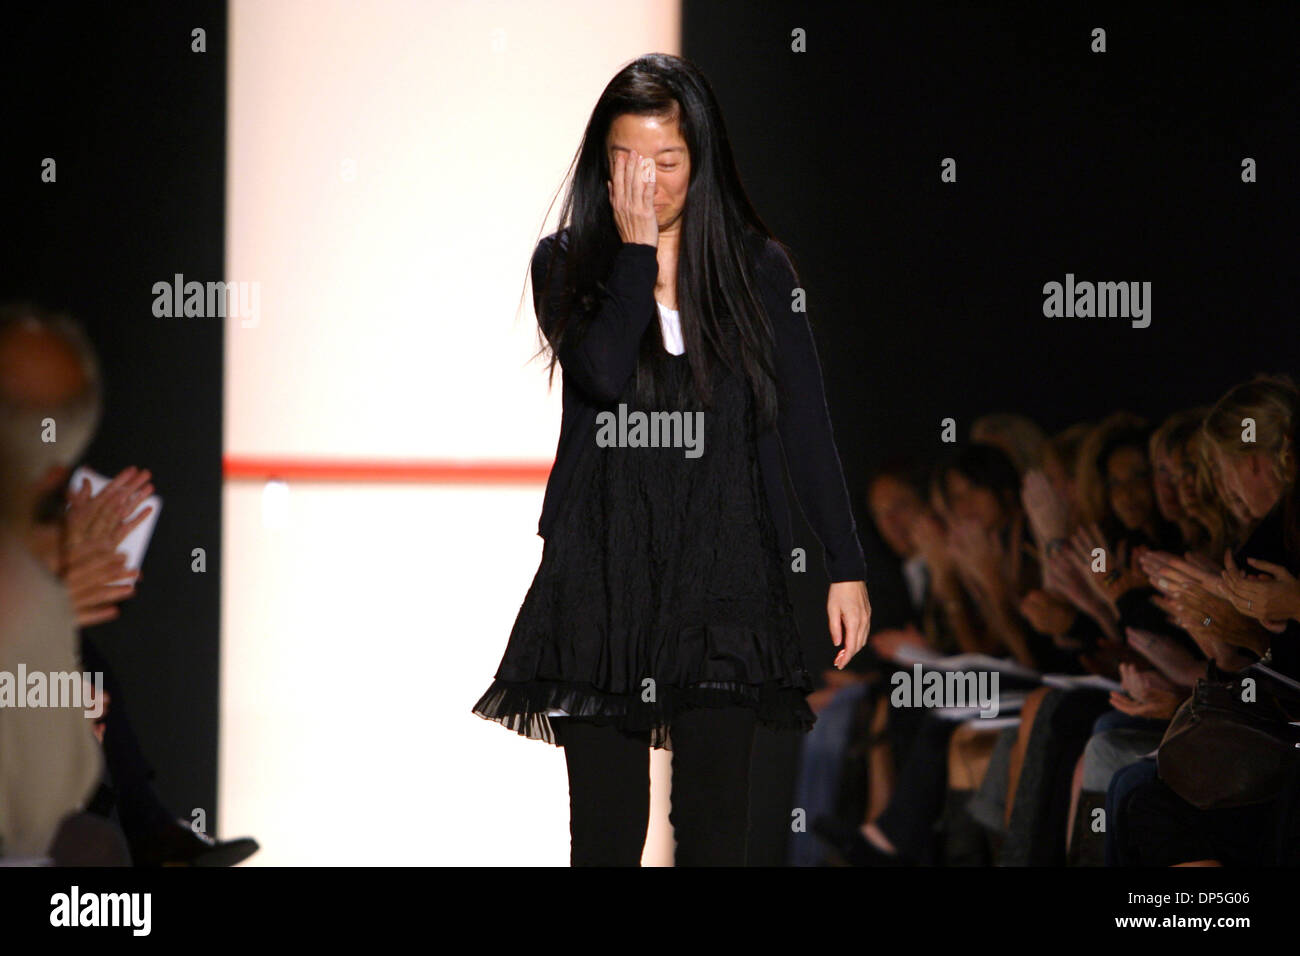 Sep 14, 2006; New York, NY, USA; After losing her father, a tearful VERA WANG shows her Vera Wang  Spring 2007 Collection in NYC. Mandatory Credit: Photo by Jodi Jones/ZUMA Press. (©) Copyright 2006 by Jodi Jones - Stock Image